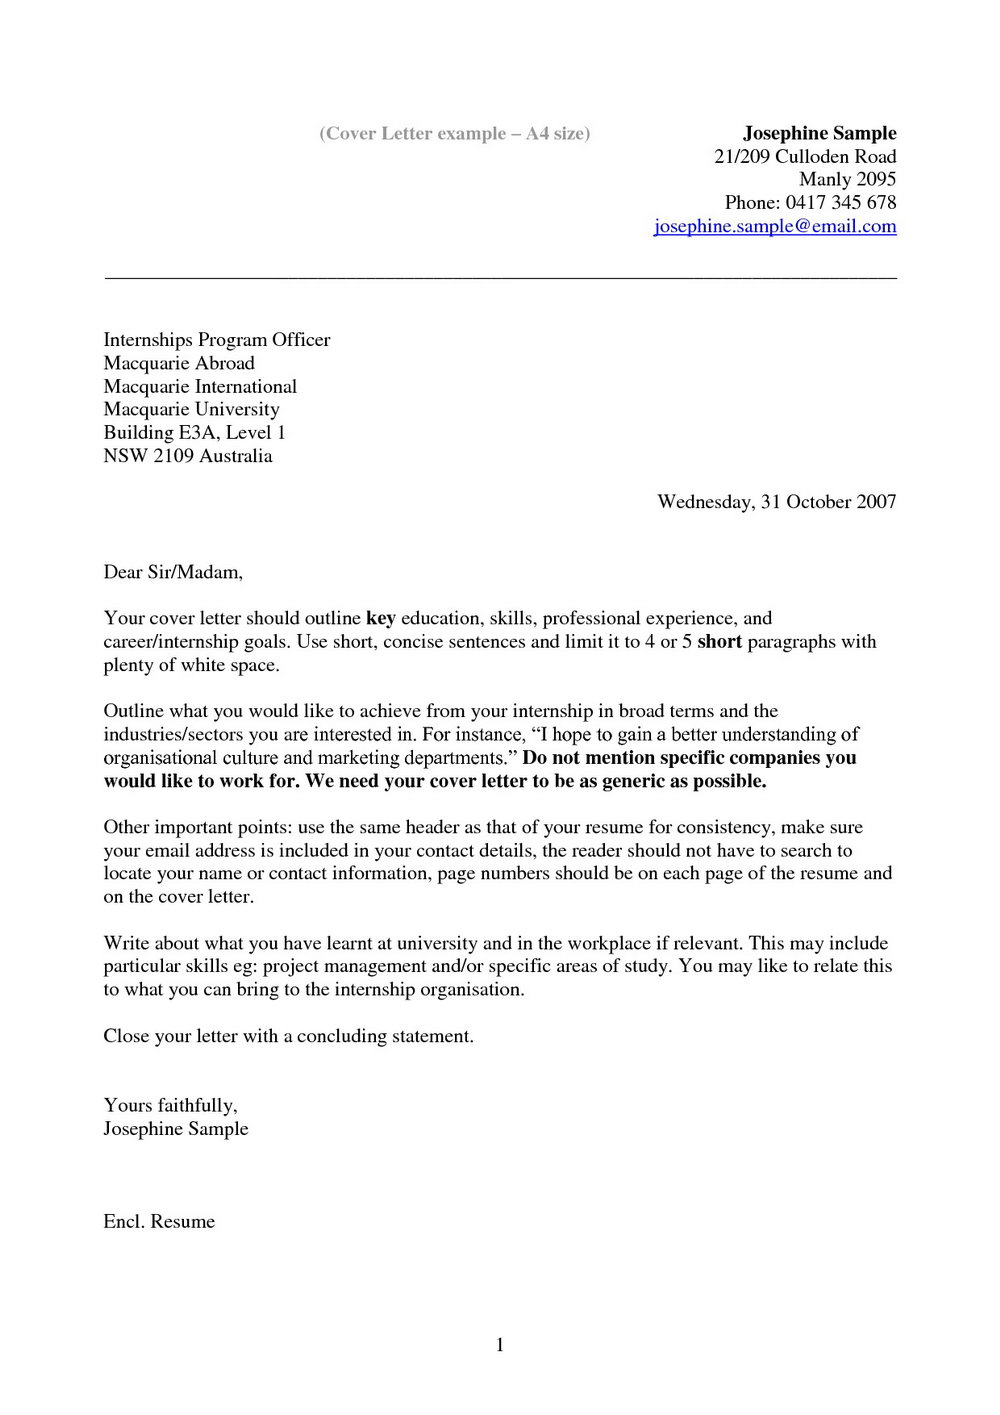 Free Cover Letter Templates For Teachers